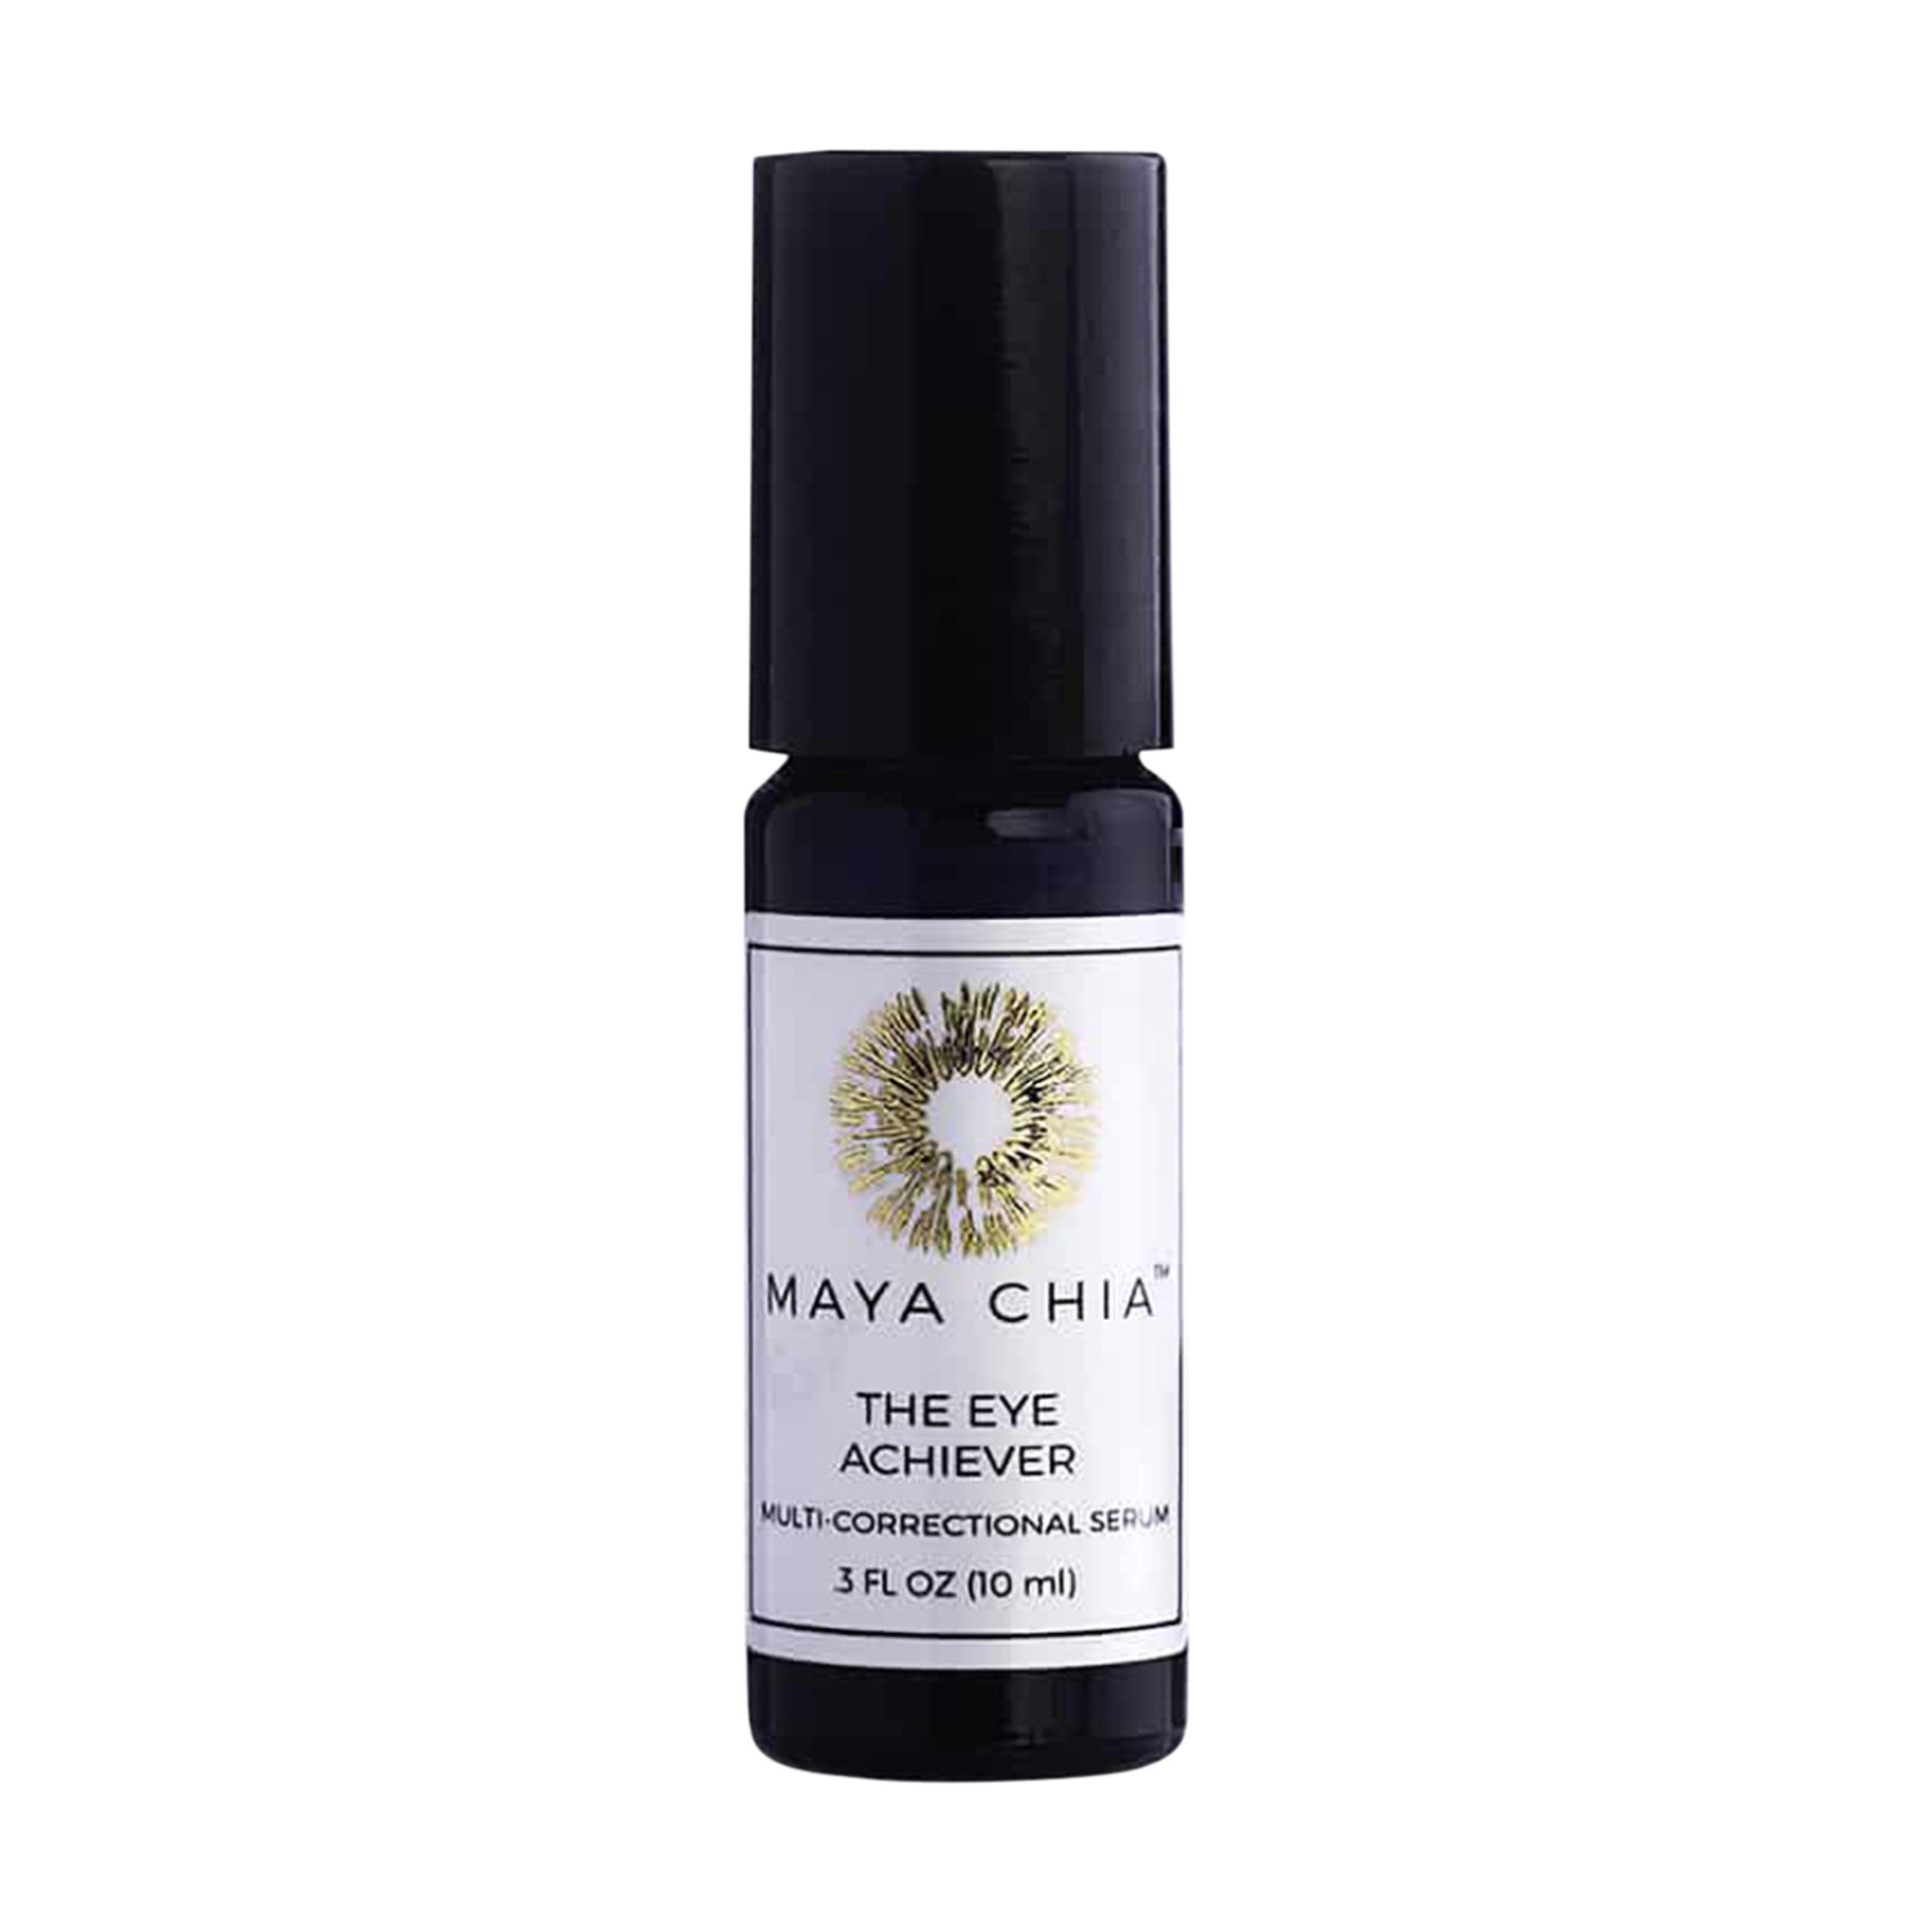 The Eye Achiever - Multi-Correctional Serum